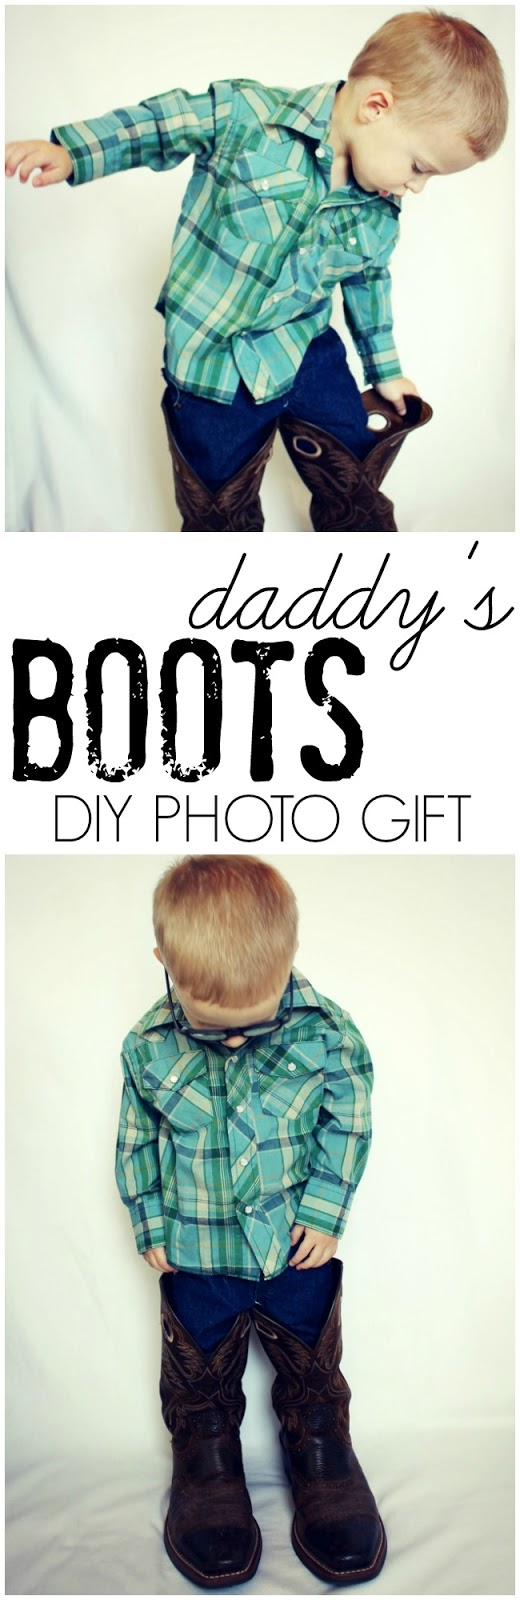 Daddy's Cowboy Boots Photo Gift Idea:  Child at Heart